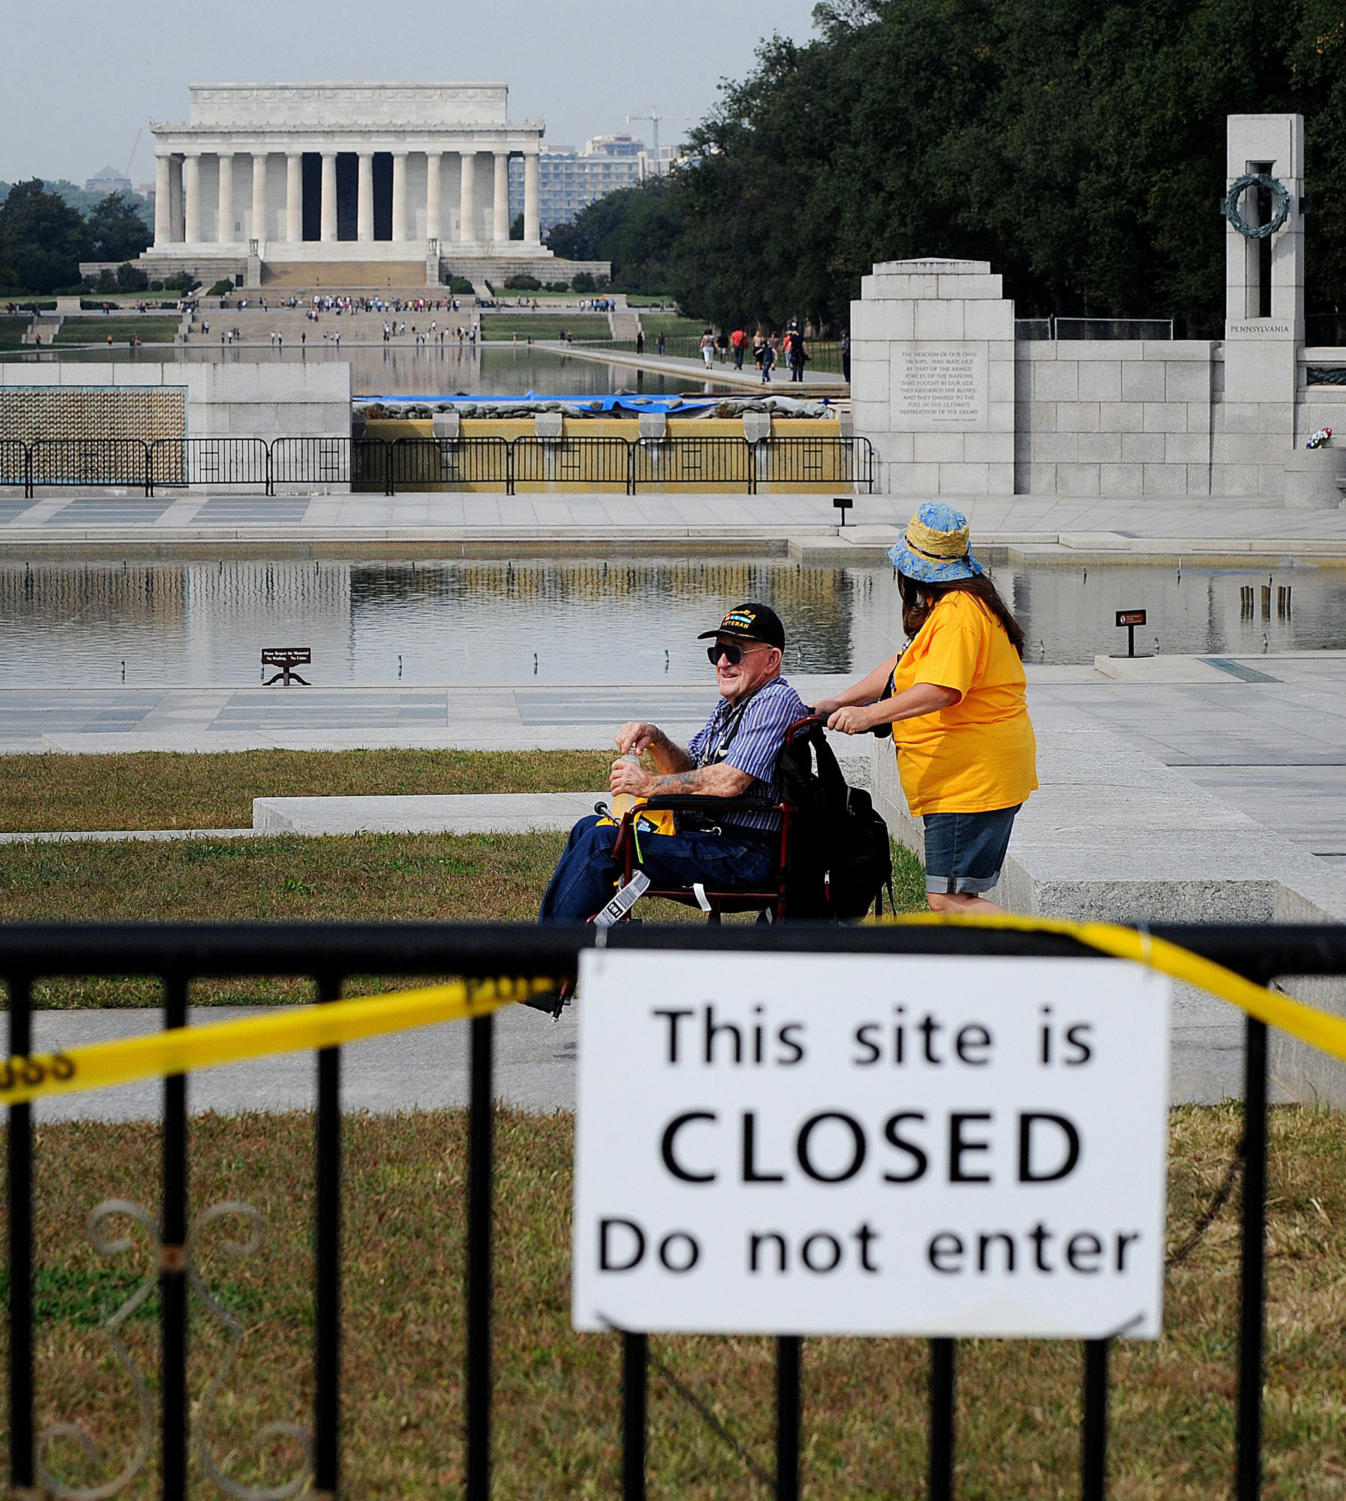 A file image from the government shutdown in 2013. If the government shuts down in the coming days, the Trump administration plans to keep many national parks and monuments open. (Olivier Douliery/Abaca Press/MCT)